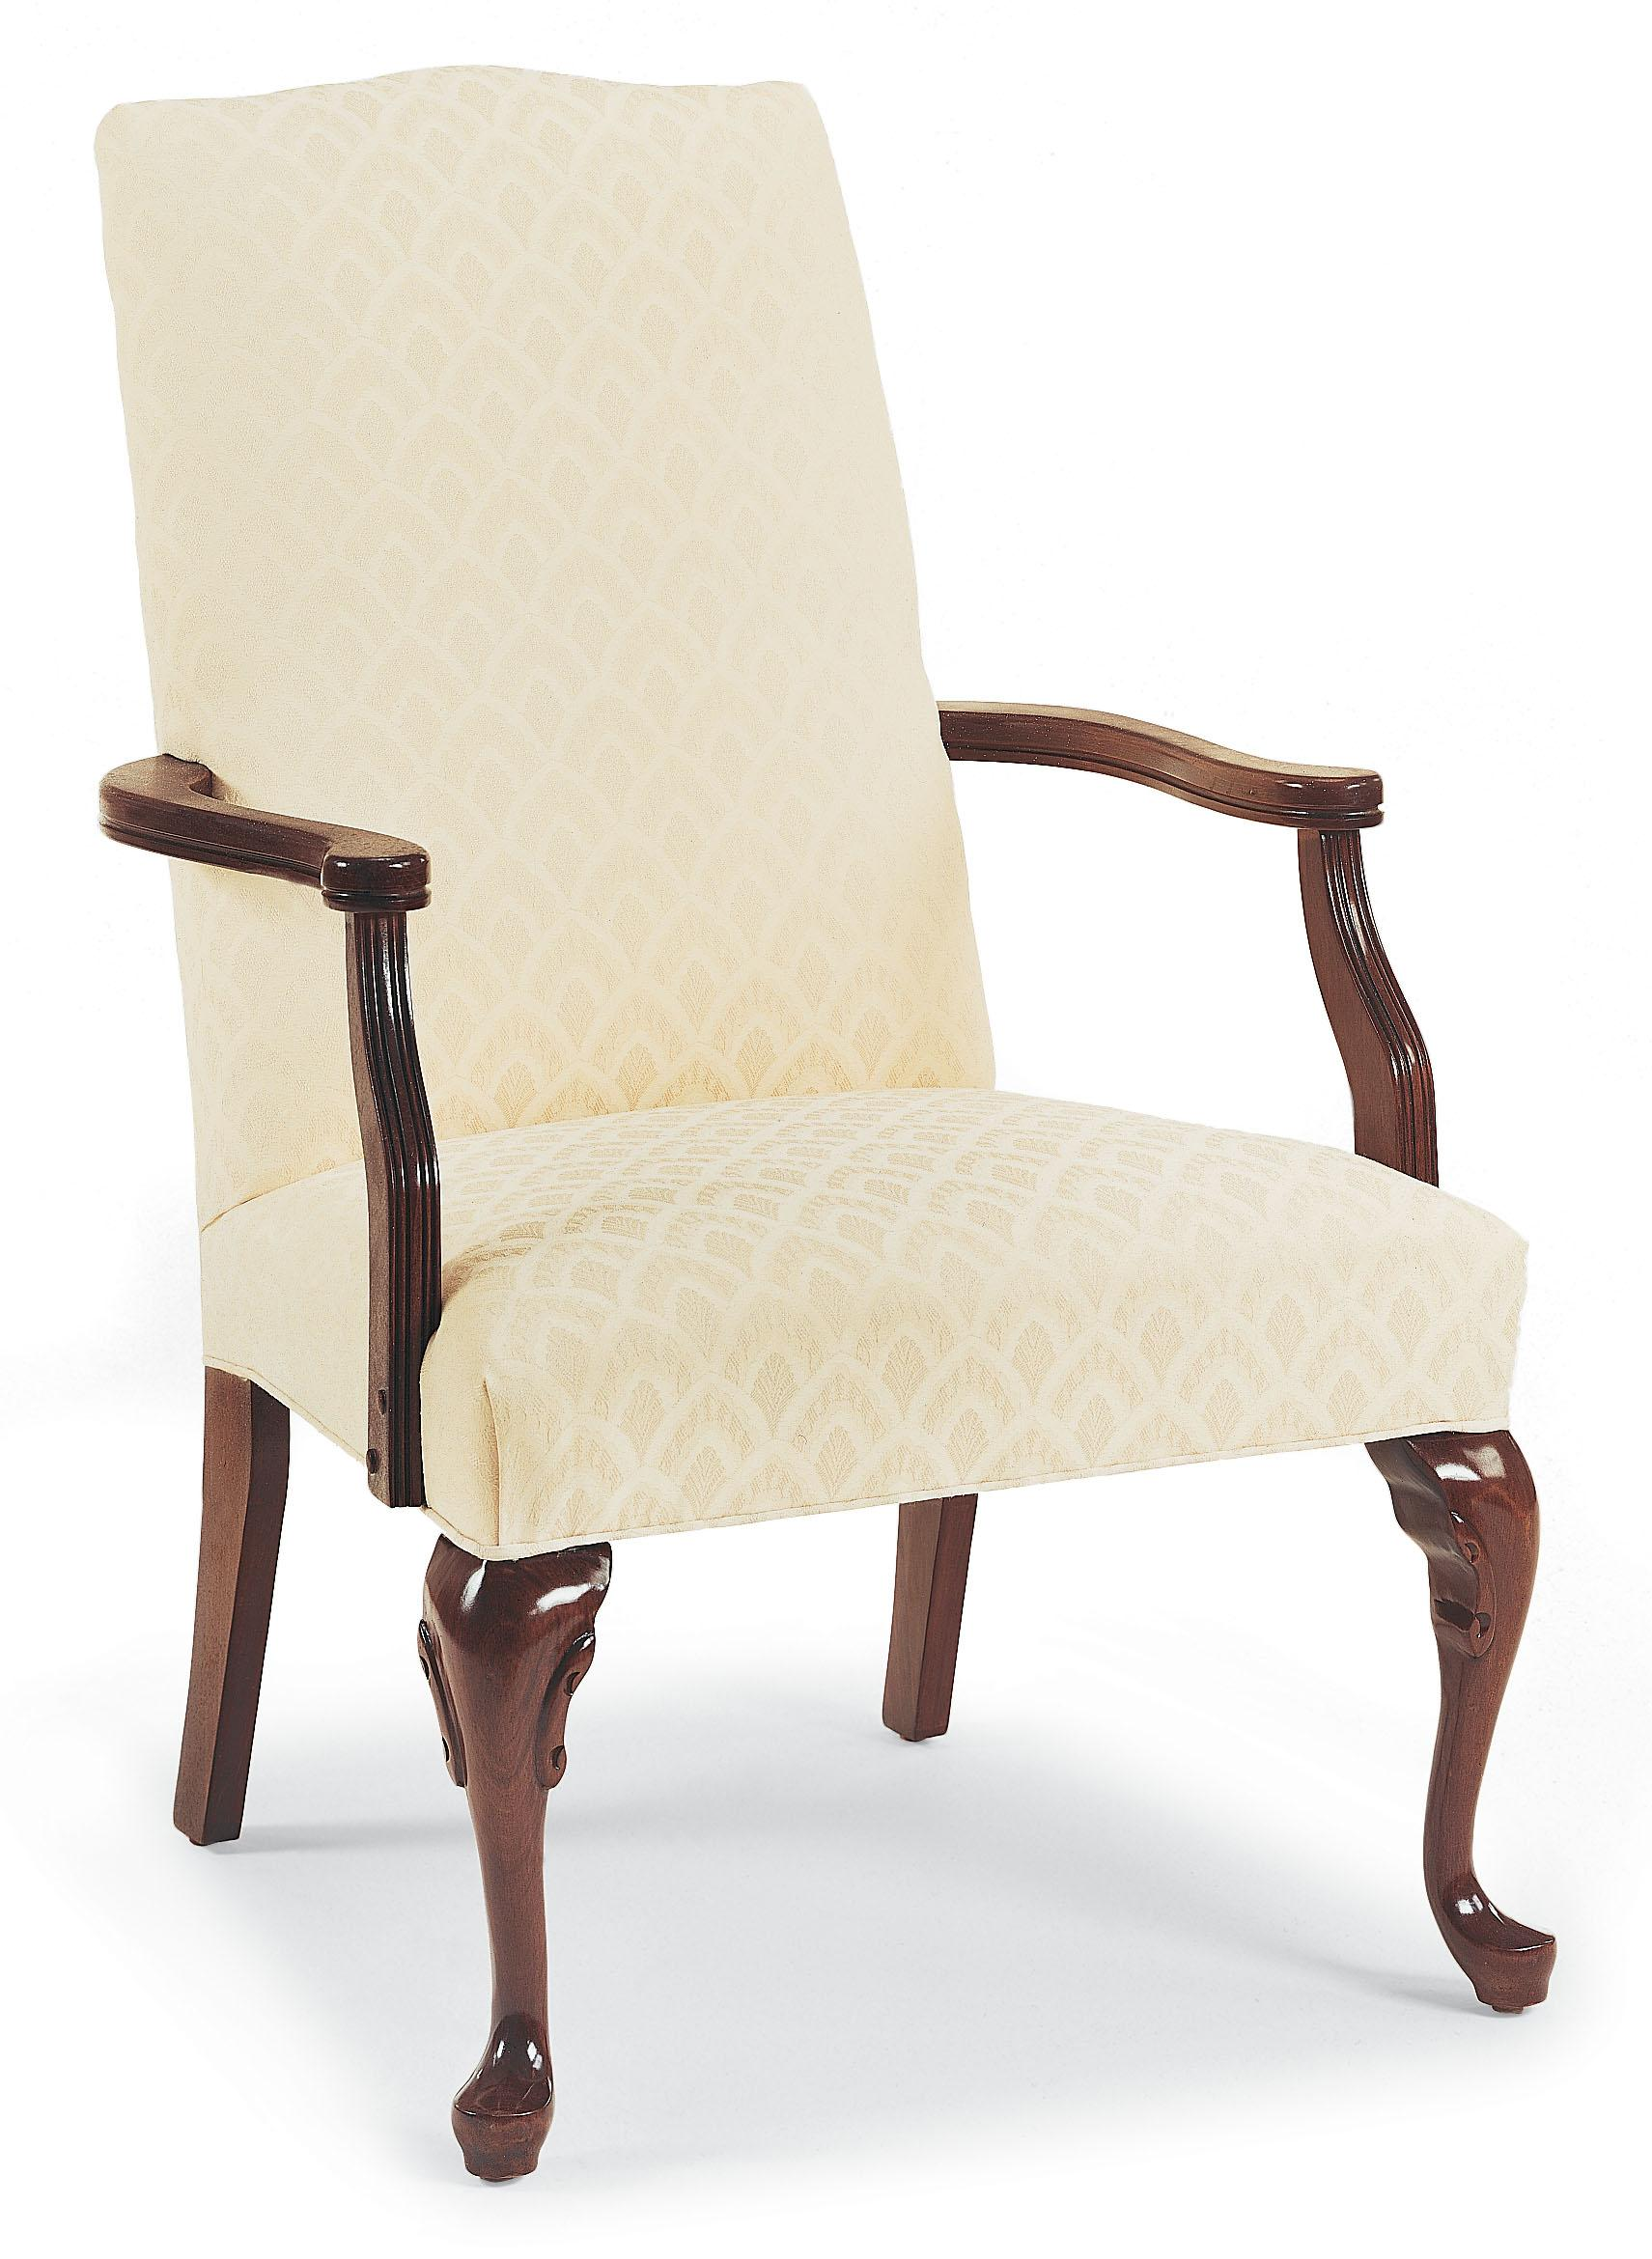 Fairfield Chairs Exposed Wood Occasional Chair - Item Number: 5173-01